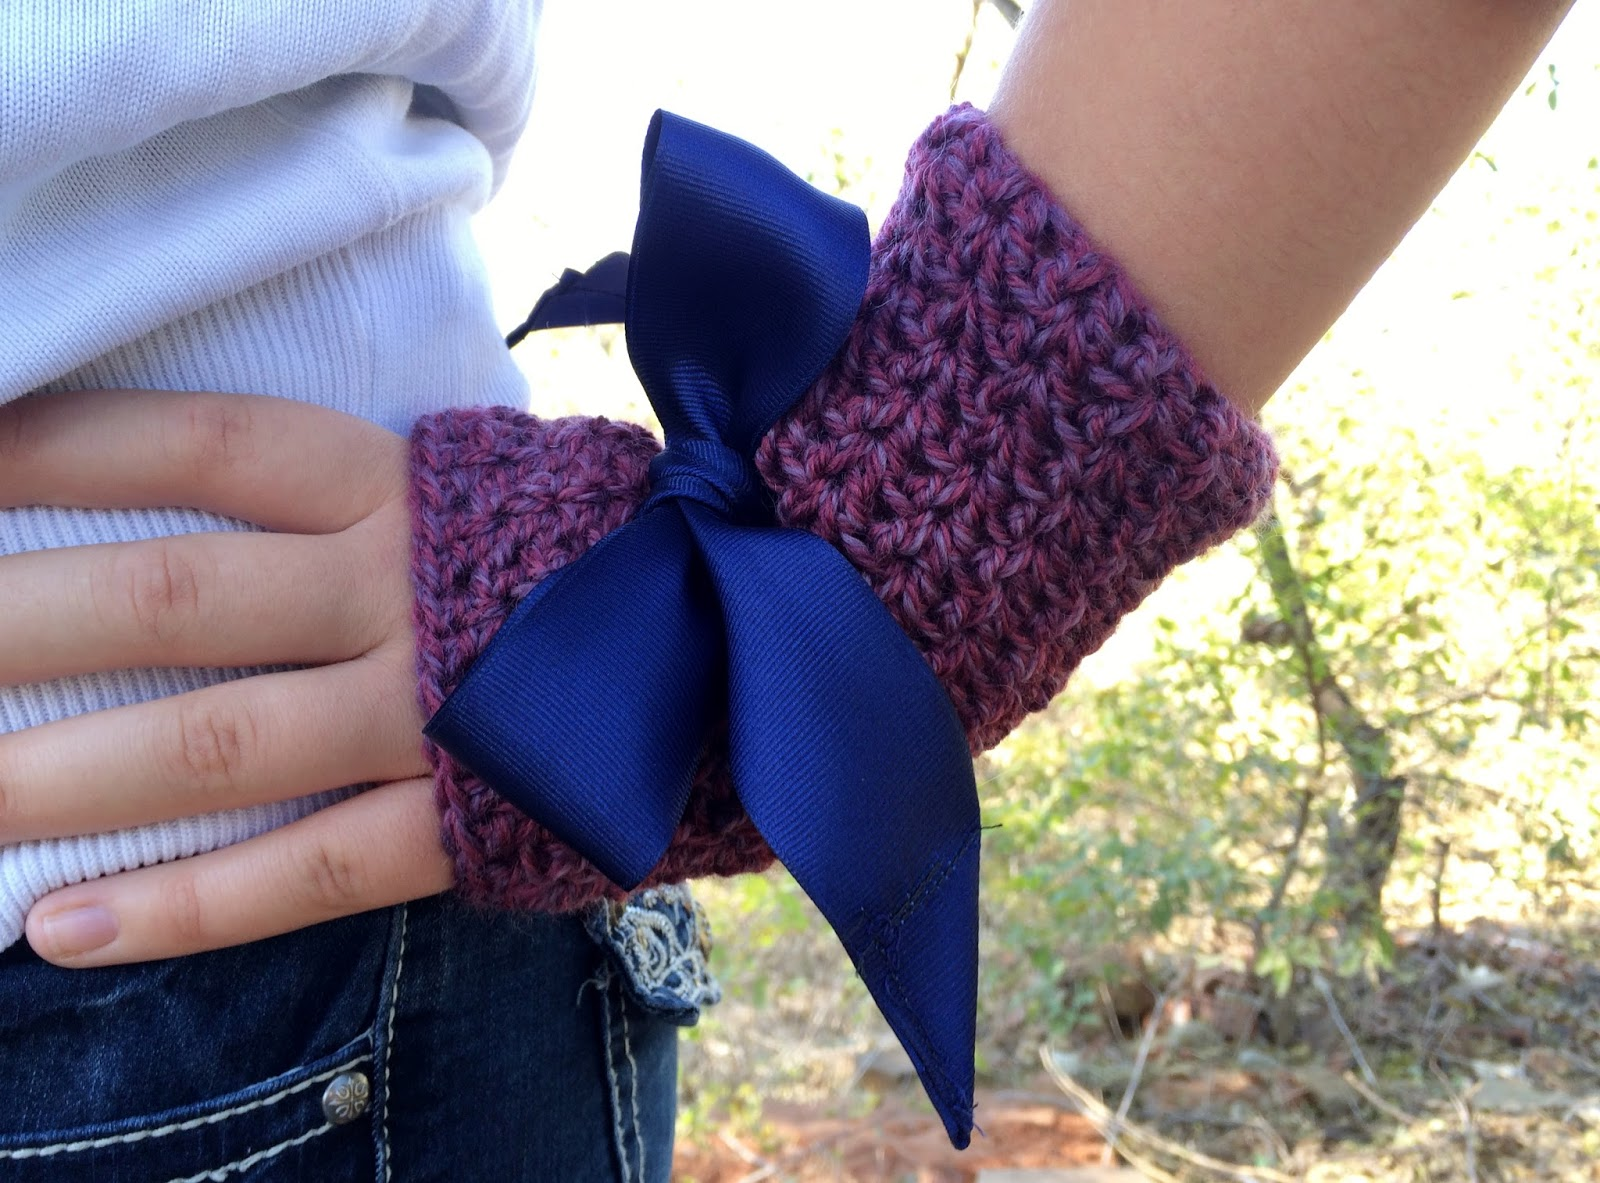 Hand wearing a mauve crochet fingerless glove with a large royal blue ribbon bow. Hand is on the hip.